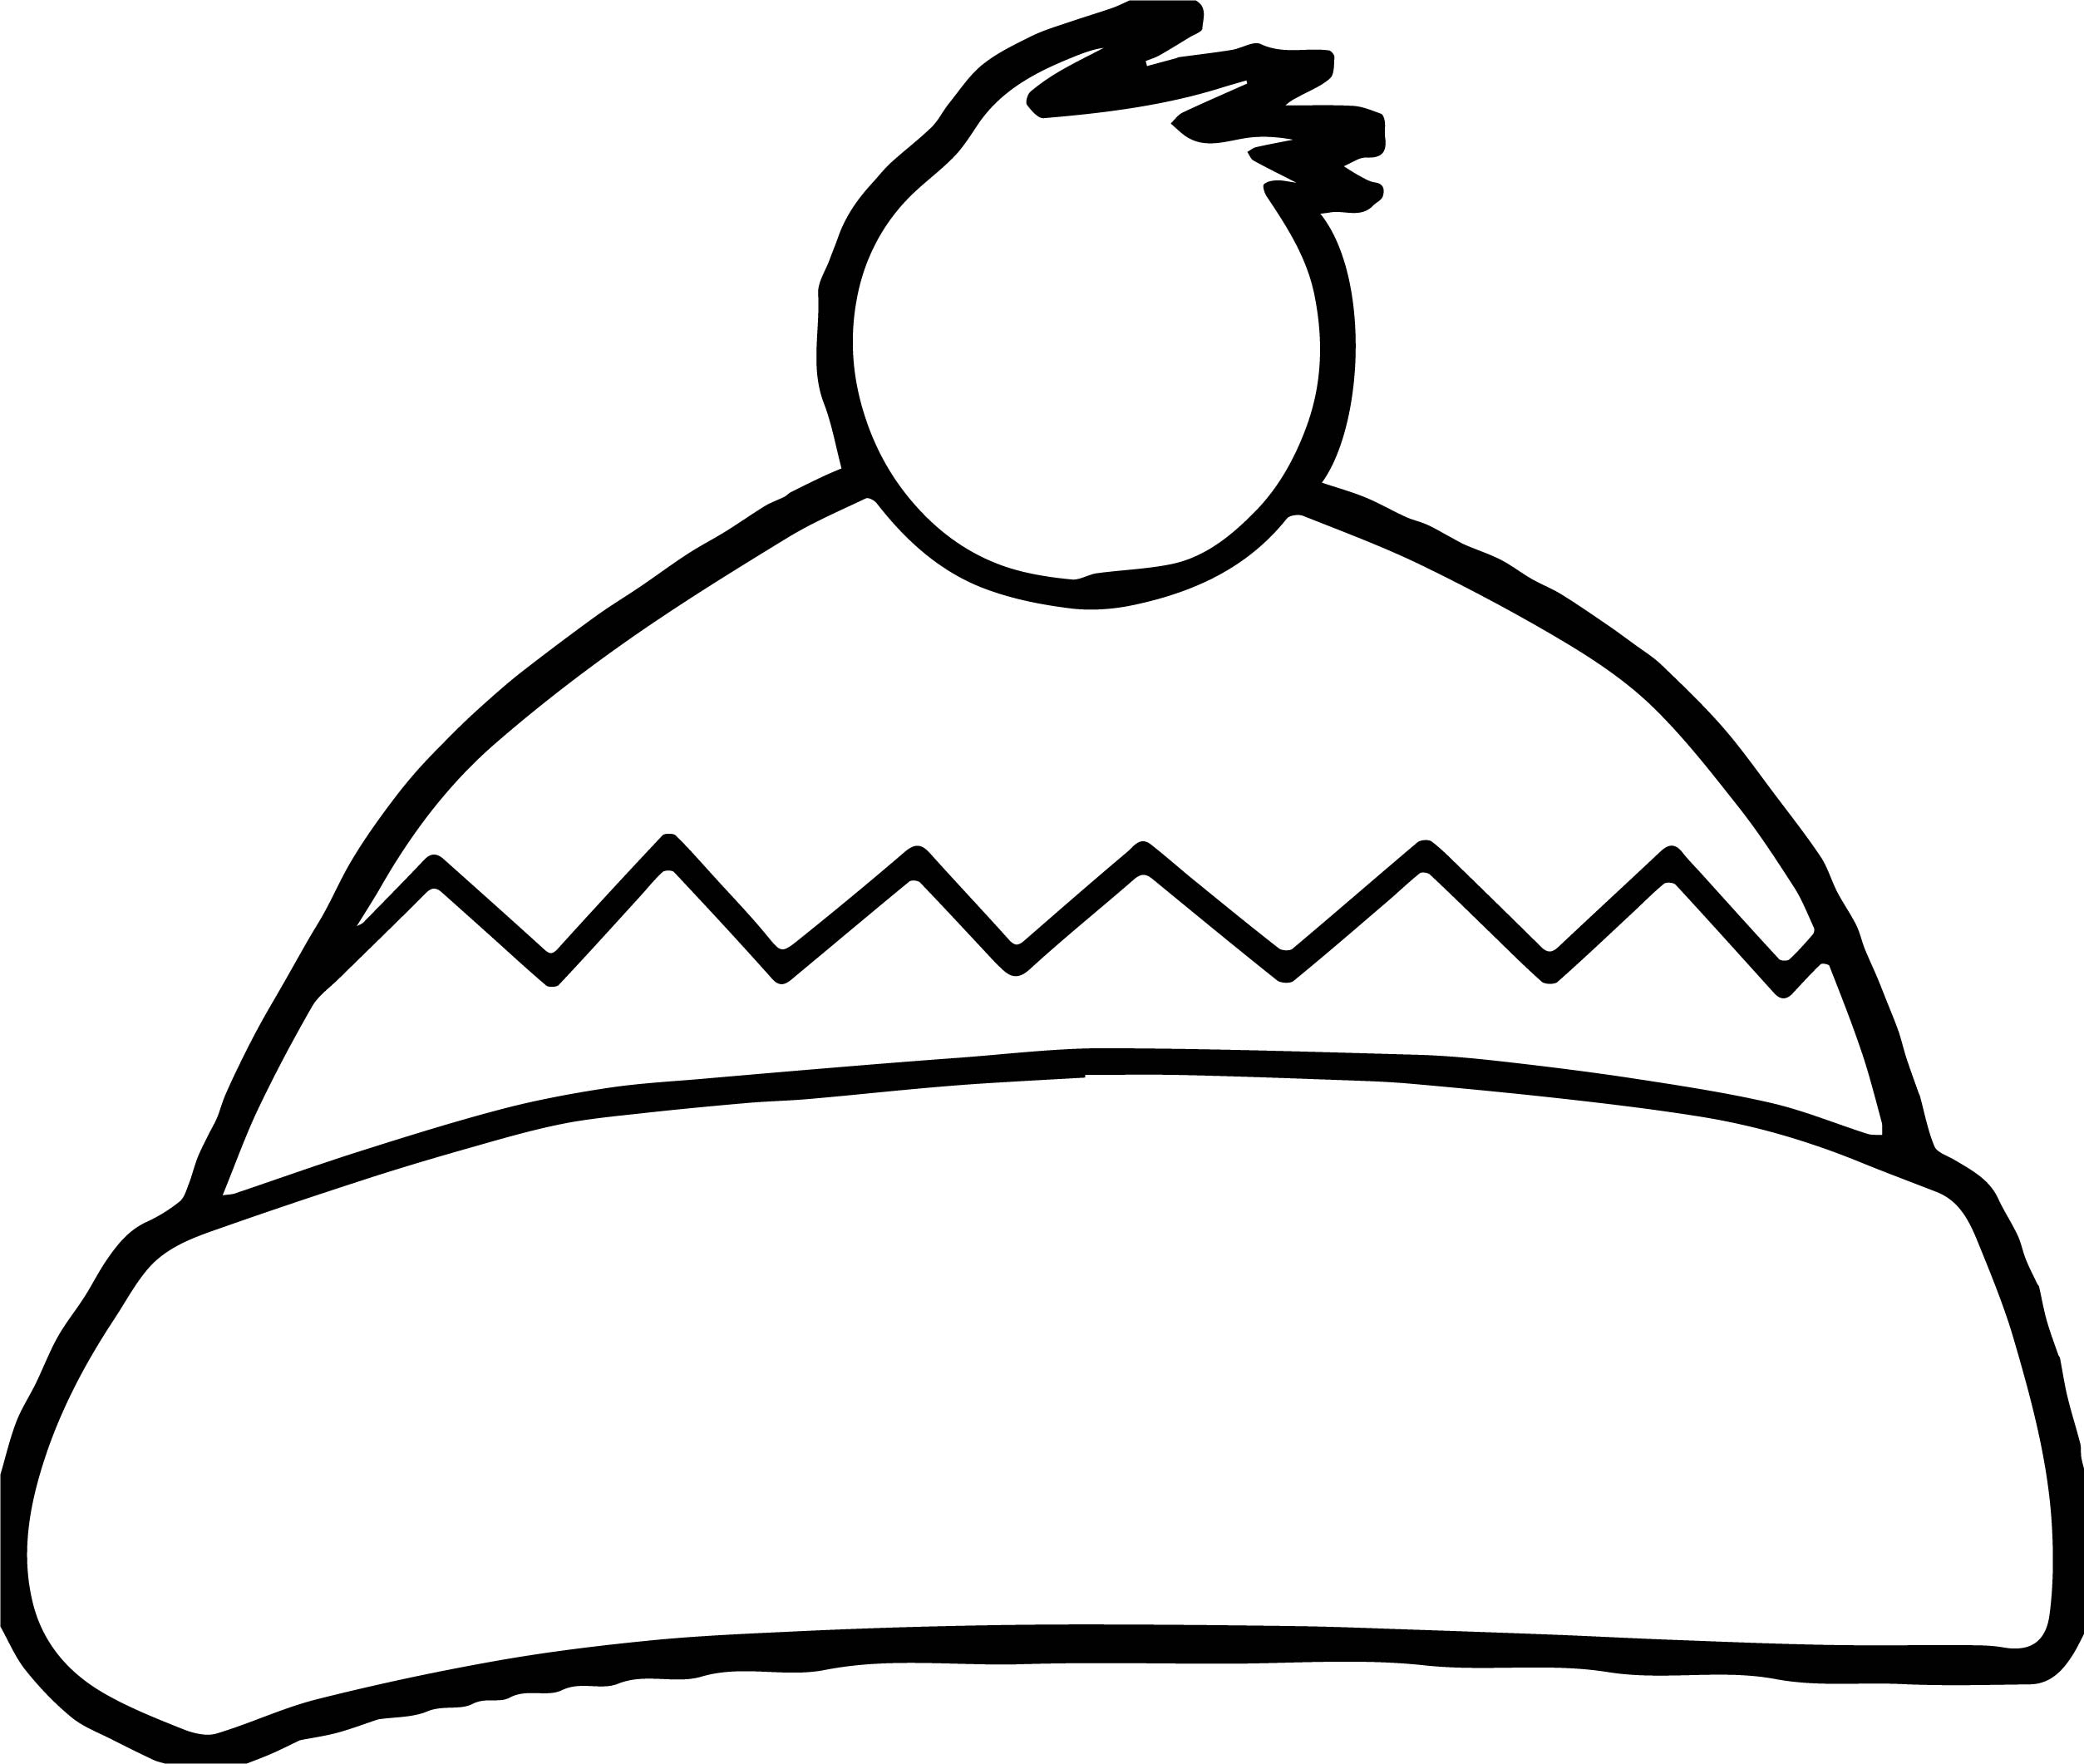 winter hat coloring page woolly hat winter s4341 coloring pages printable winter hat coloring page